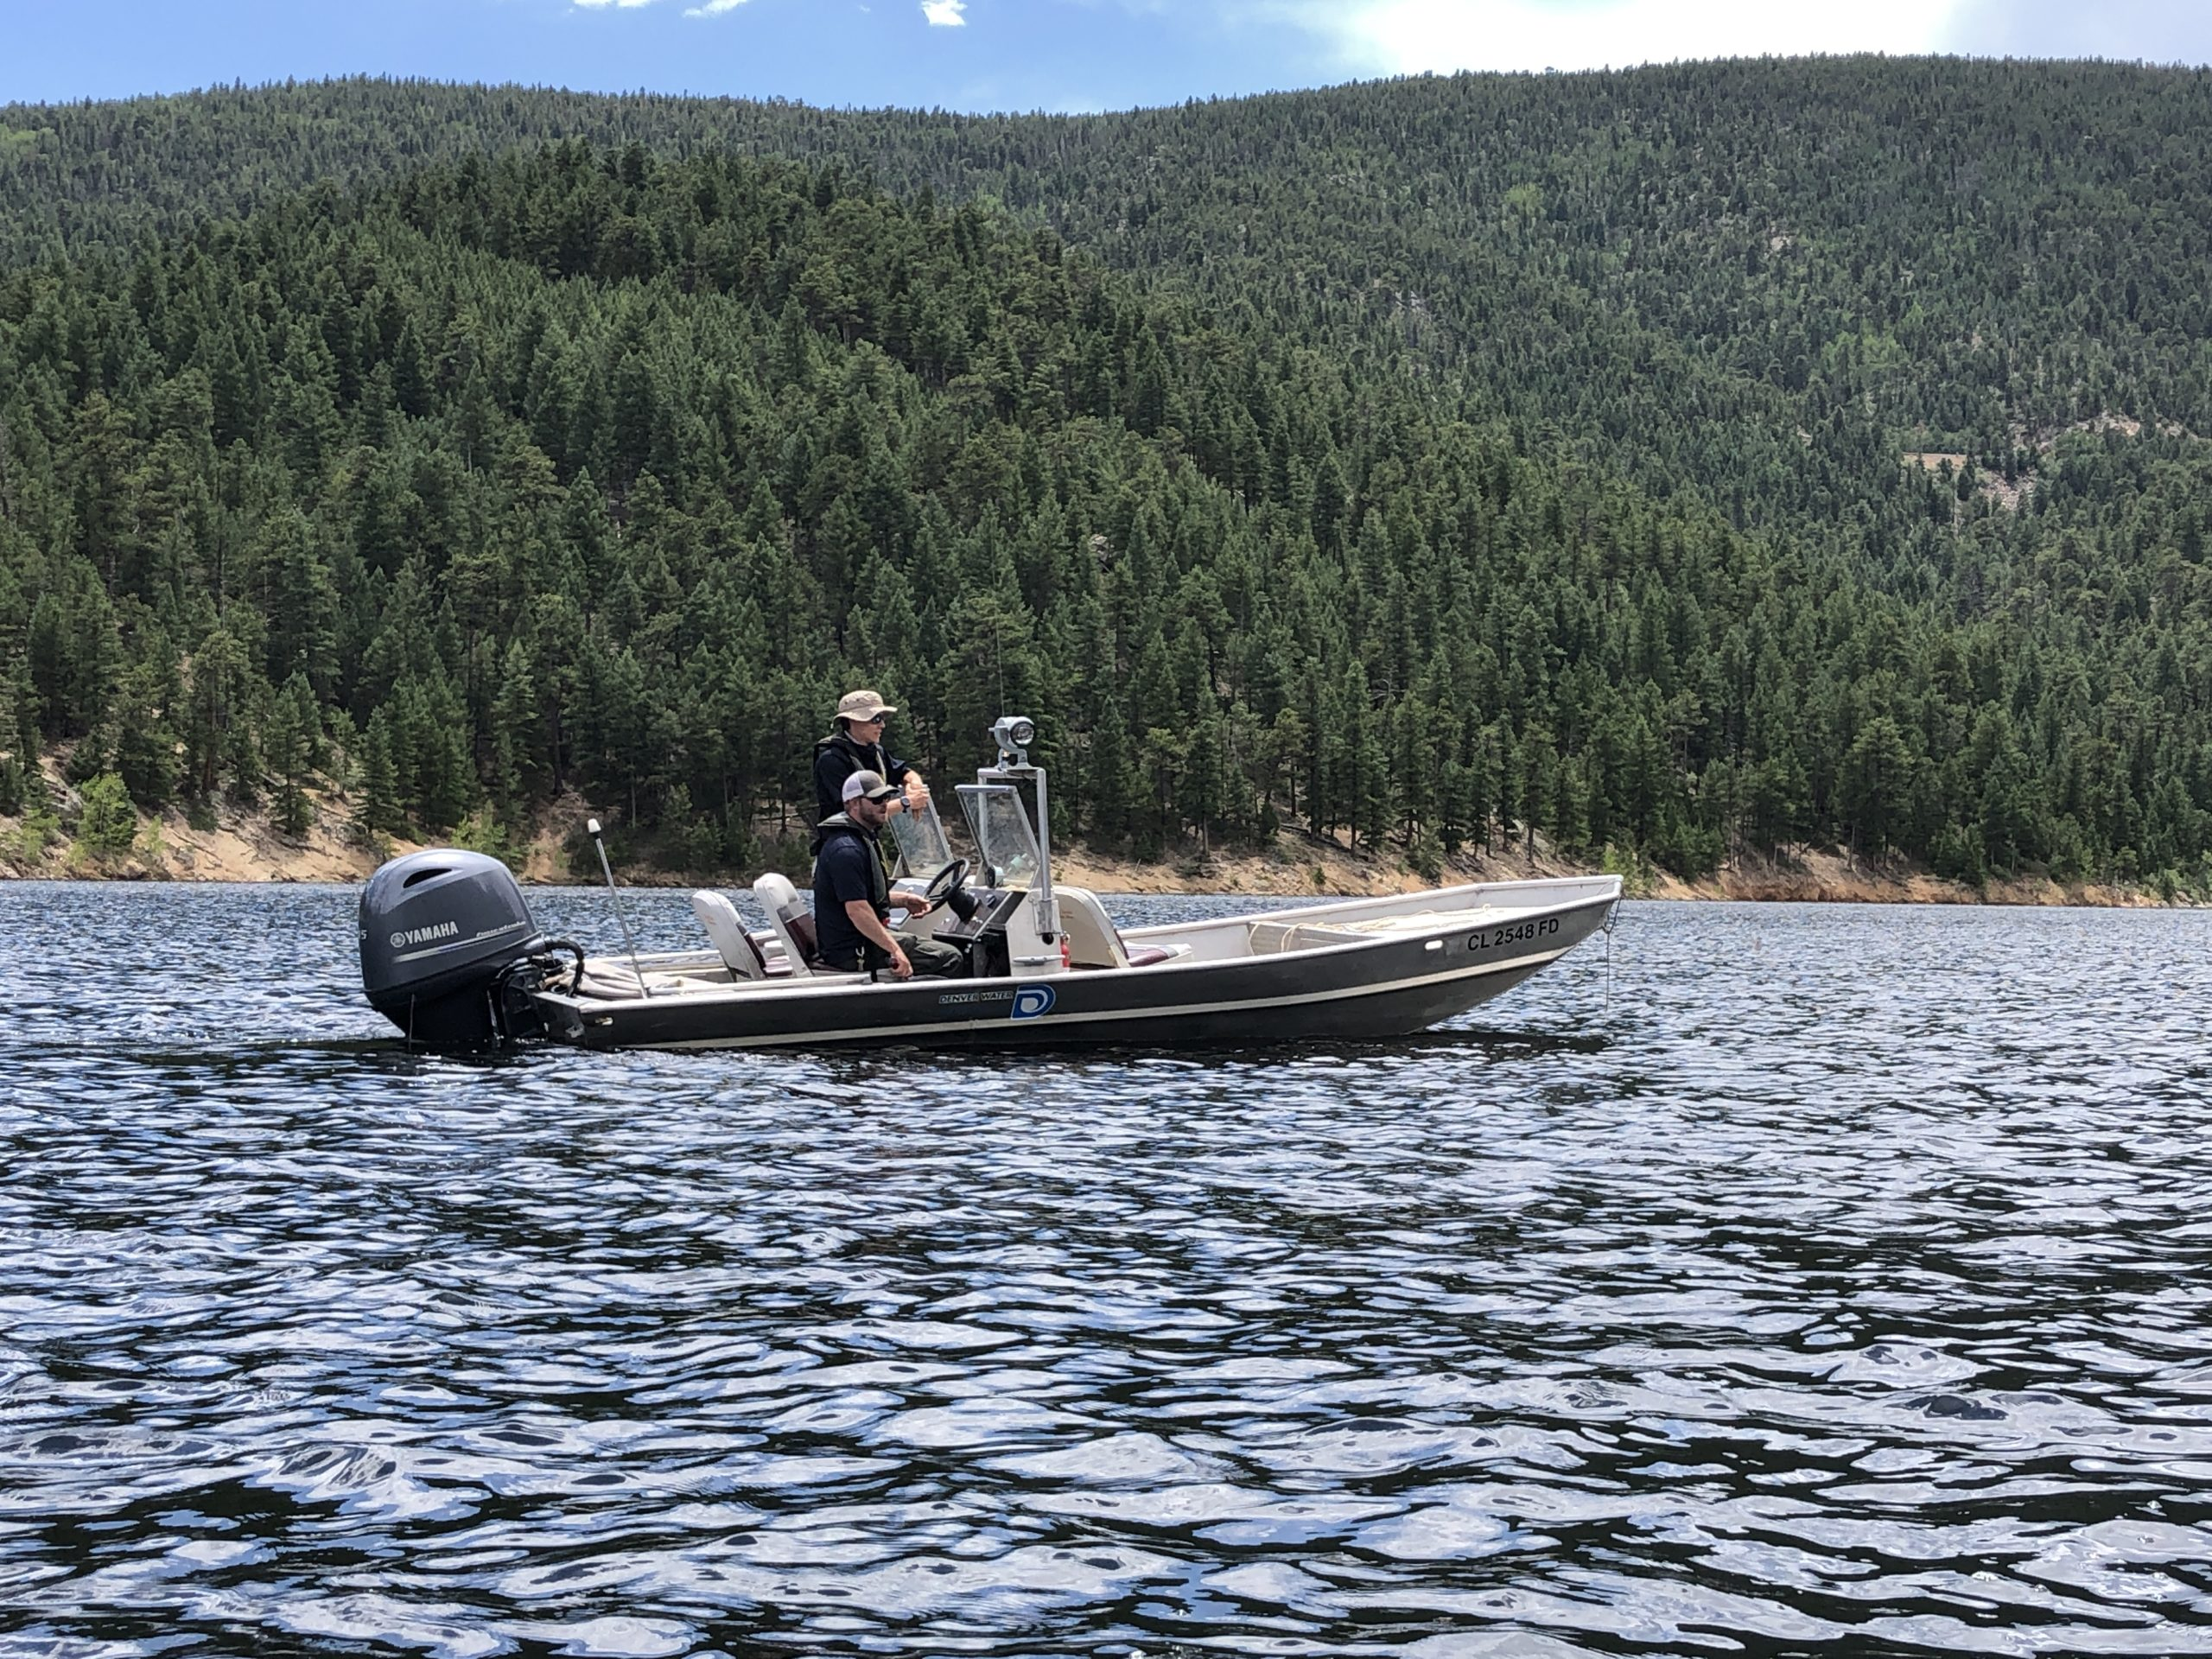 Two men on a small motor boat on a reservoir in the mountains.